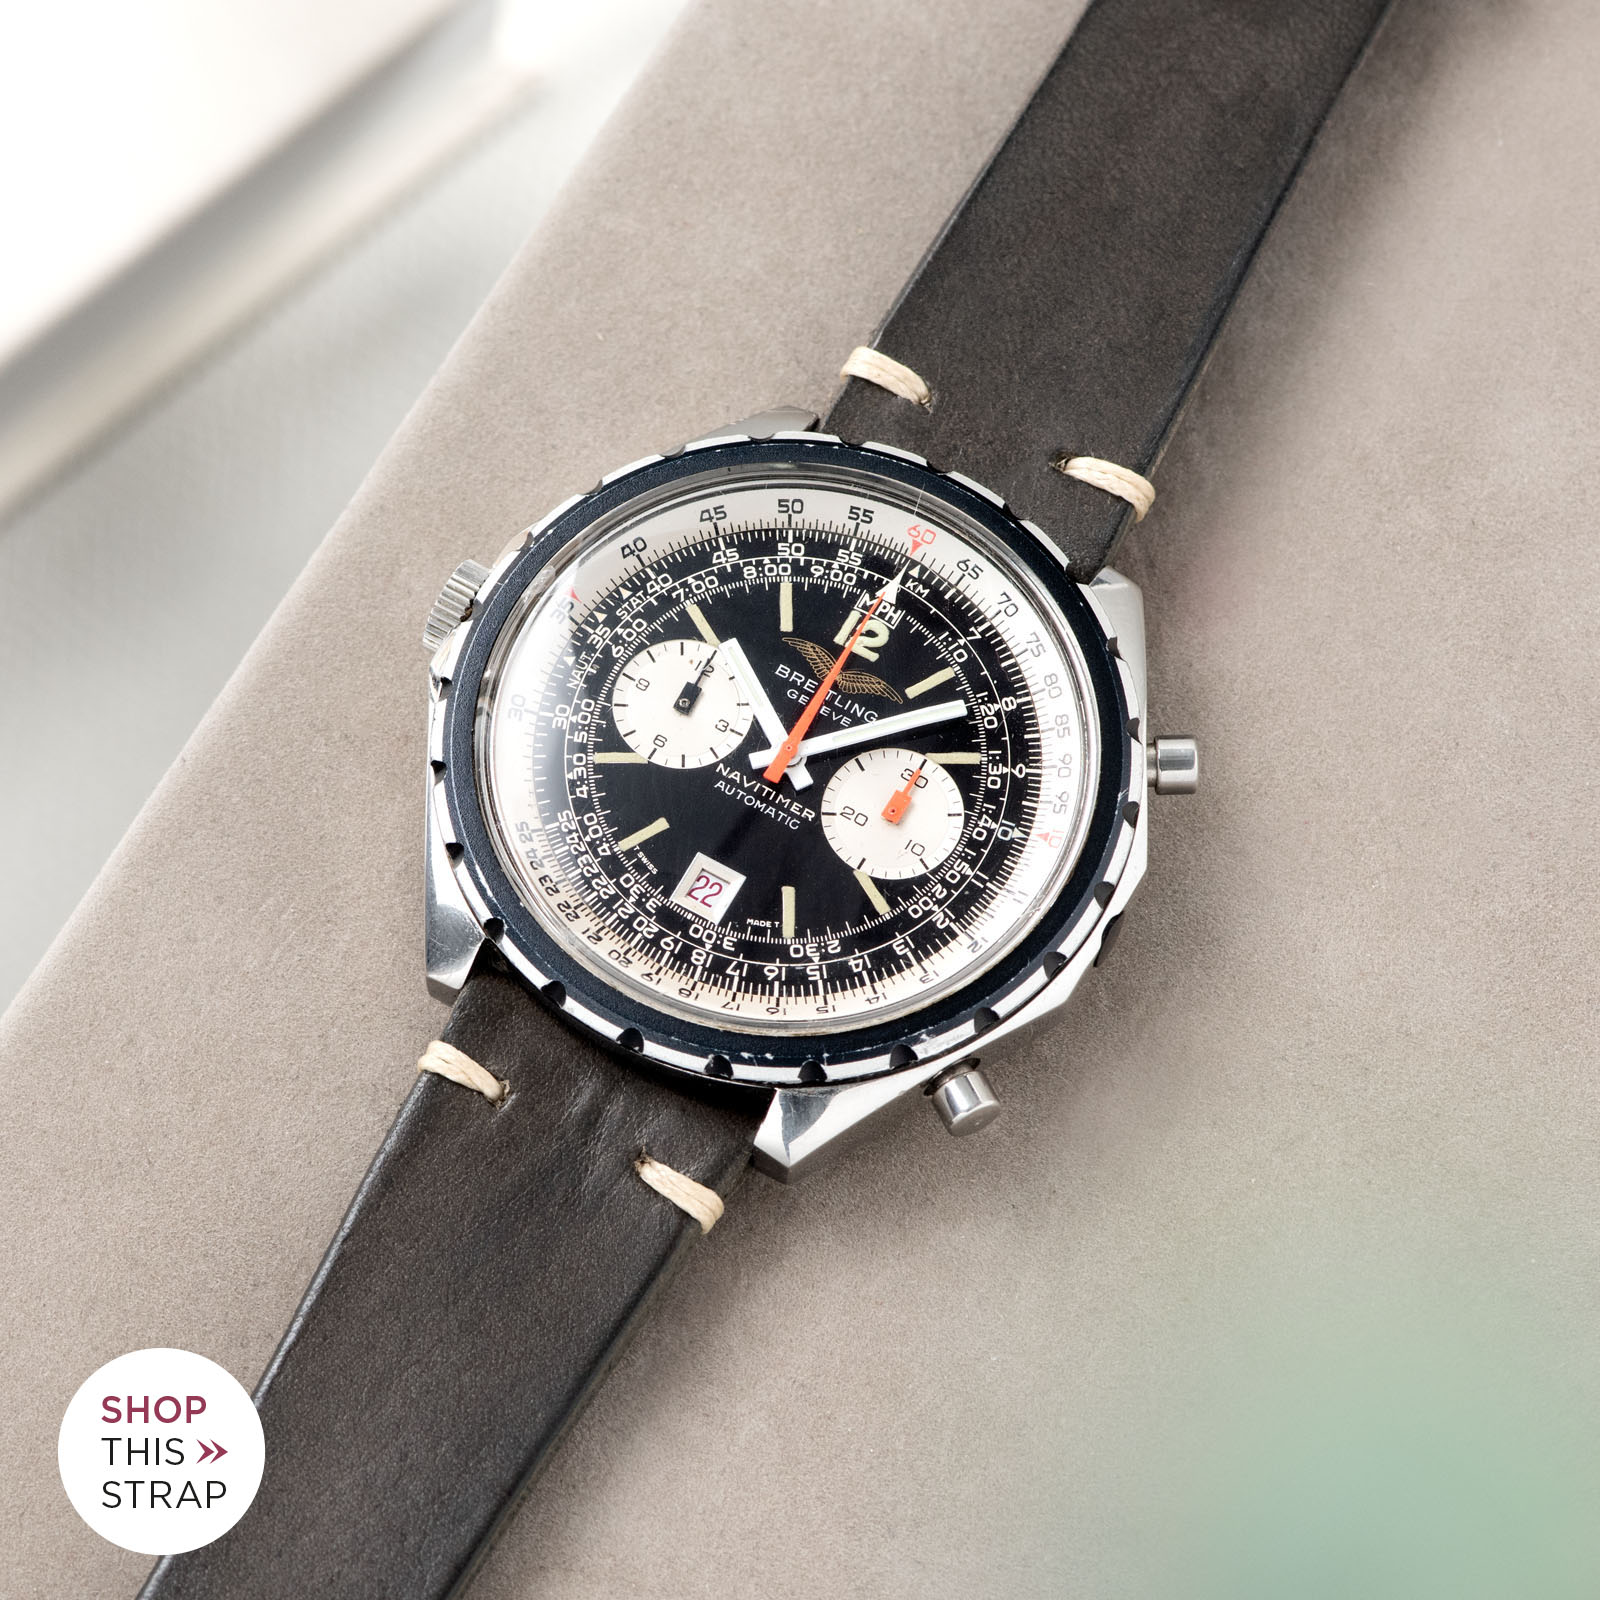 Bulang and Sons_Strapguide_Breitling Navitimer ref issued to iraqi air force ref 1806_Piombo Grey Leather Watch Strap _005